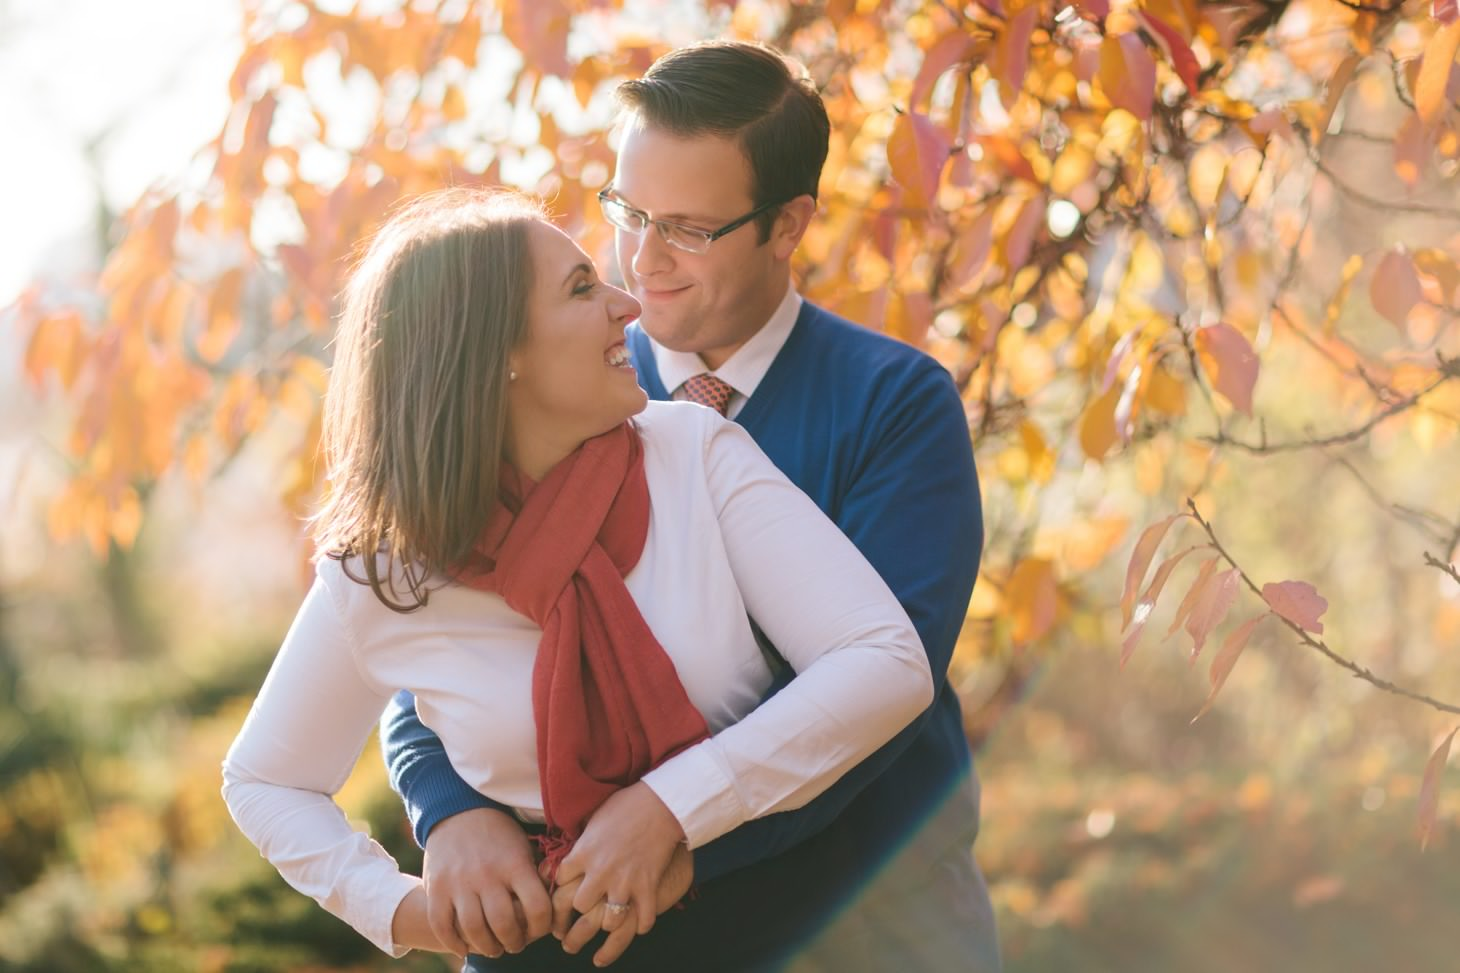 010-nyc-wedding-portrait-photographer-engagement-photos-cloisters-fall-leaves-smitten-chickens.jpg